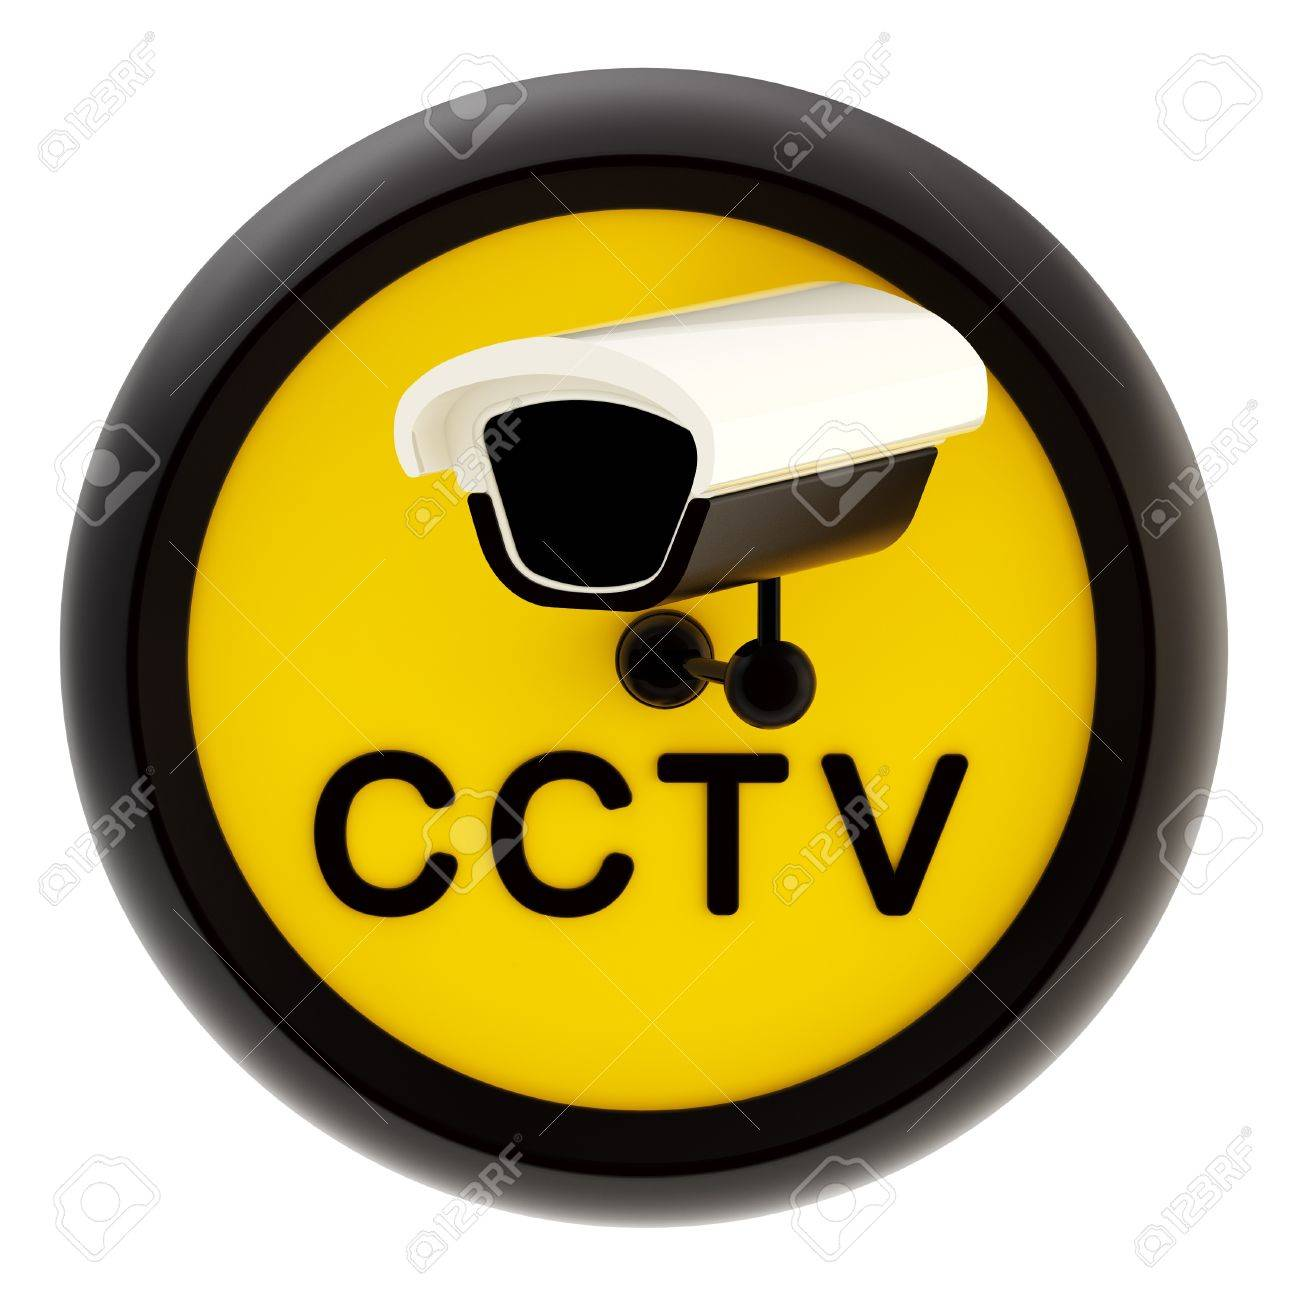 Closed circuit television alert sign Stock Photo - 13229268